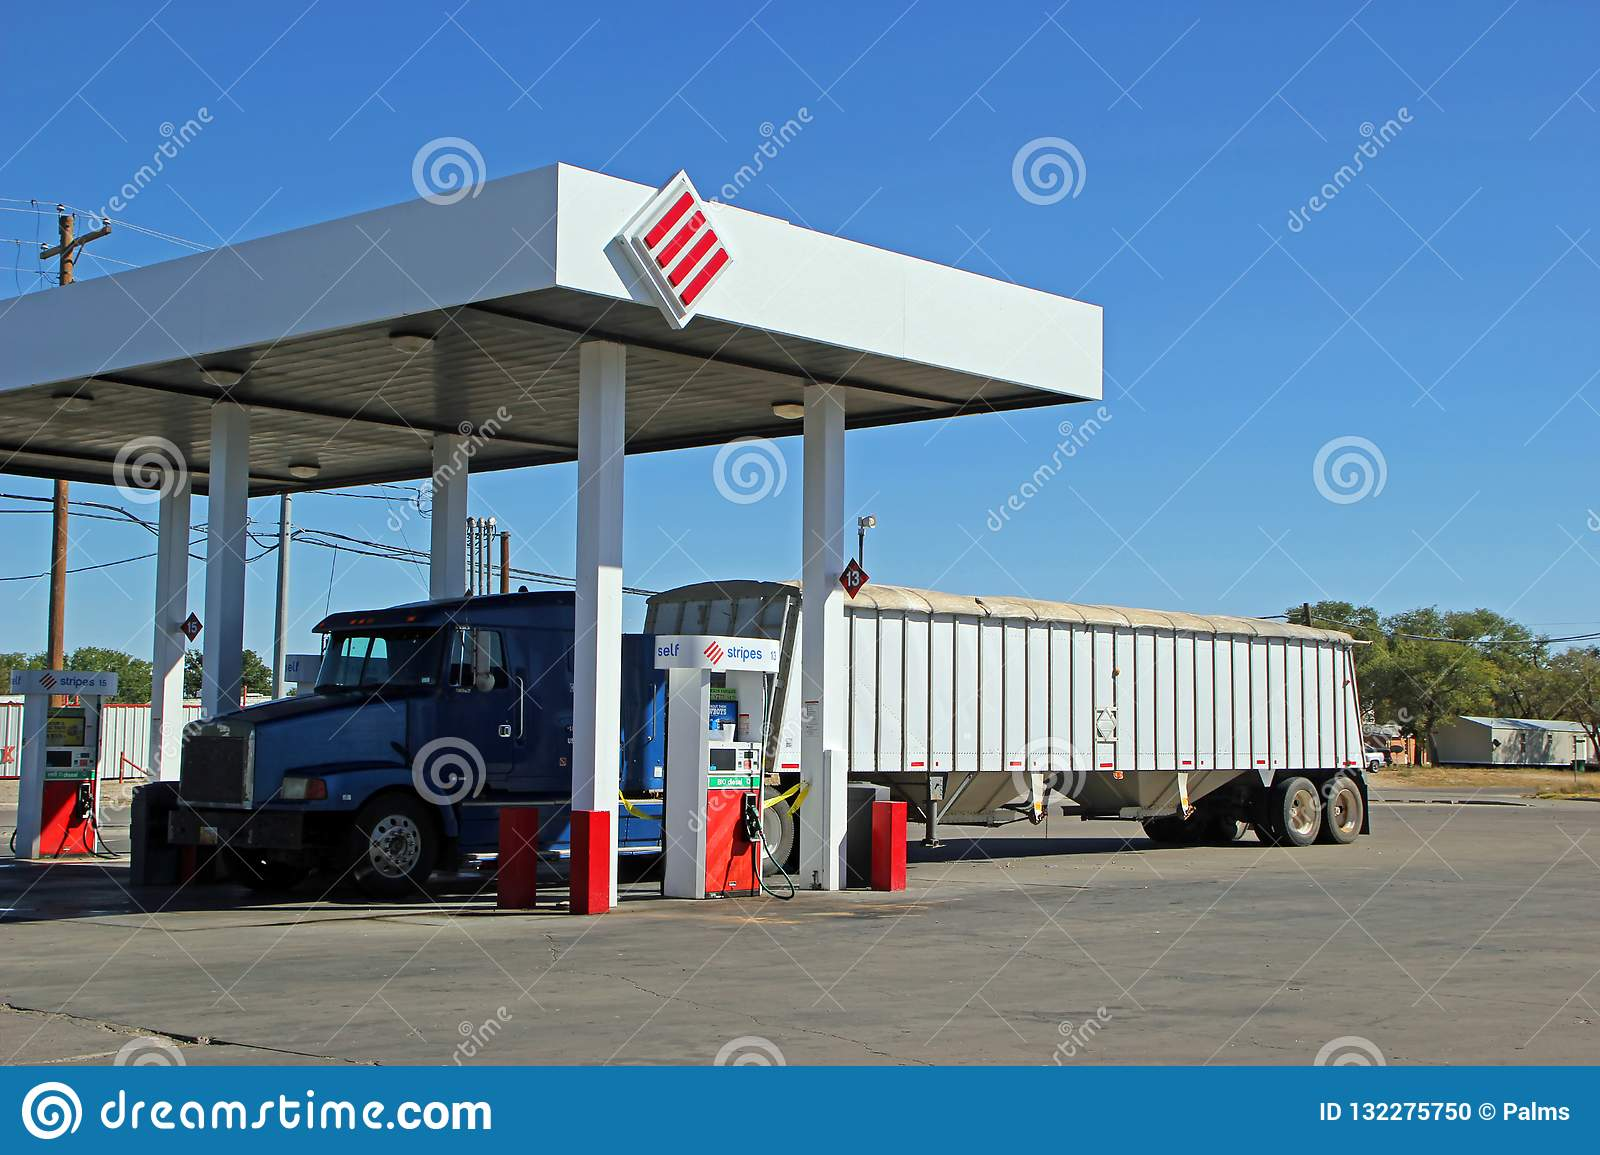 Stripes Gas Station Near Me >> Semi Truck Refueling At Stripes Gas Station In Fort Stockton